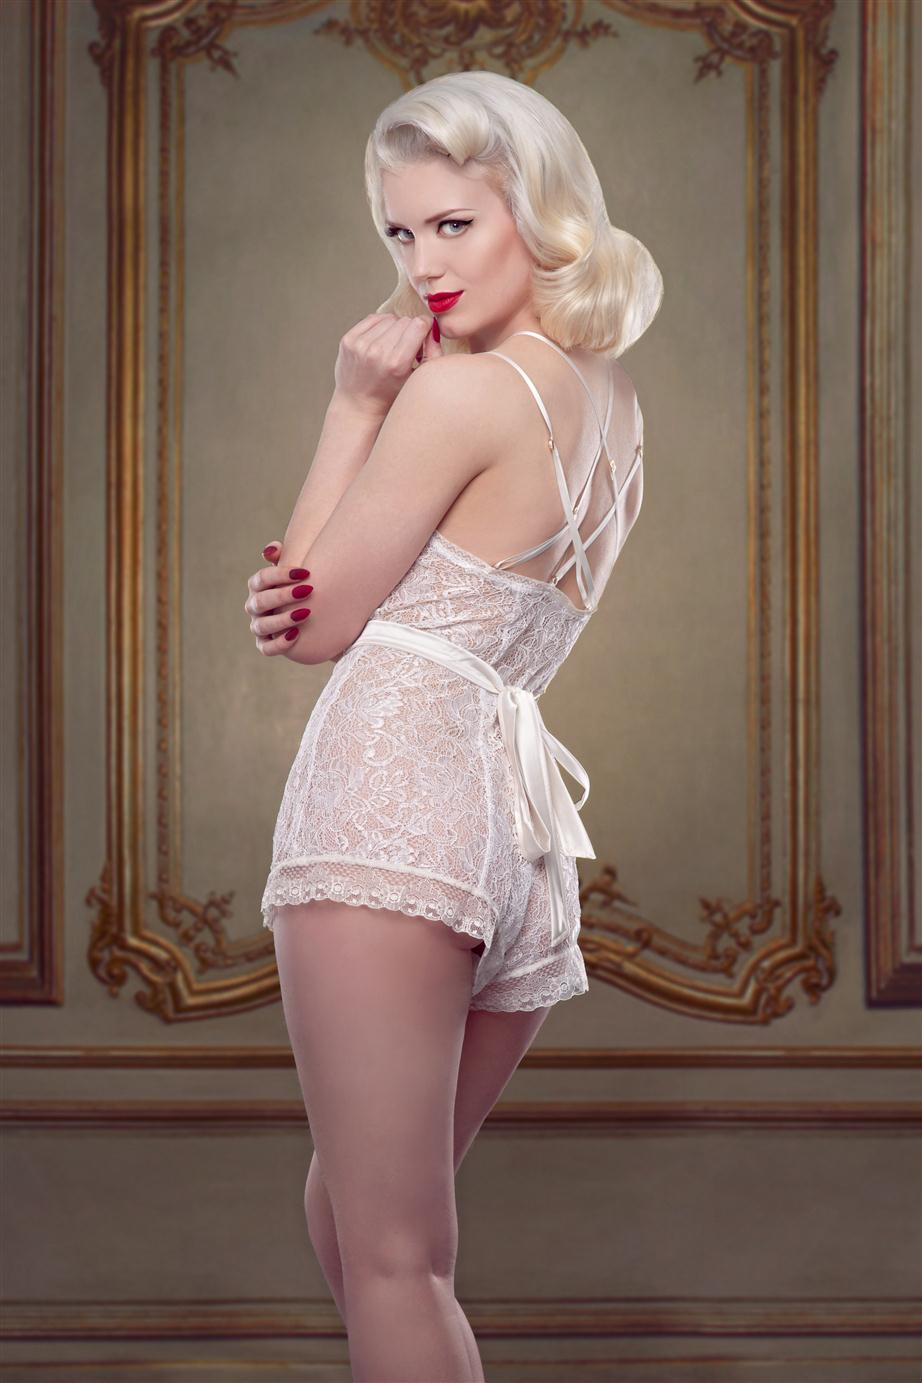 Vintage Bridal Lingerie - The Nell Teddy from Betty Blues Loungerie